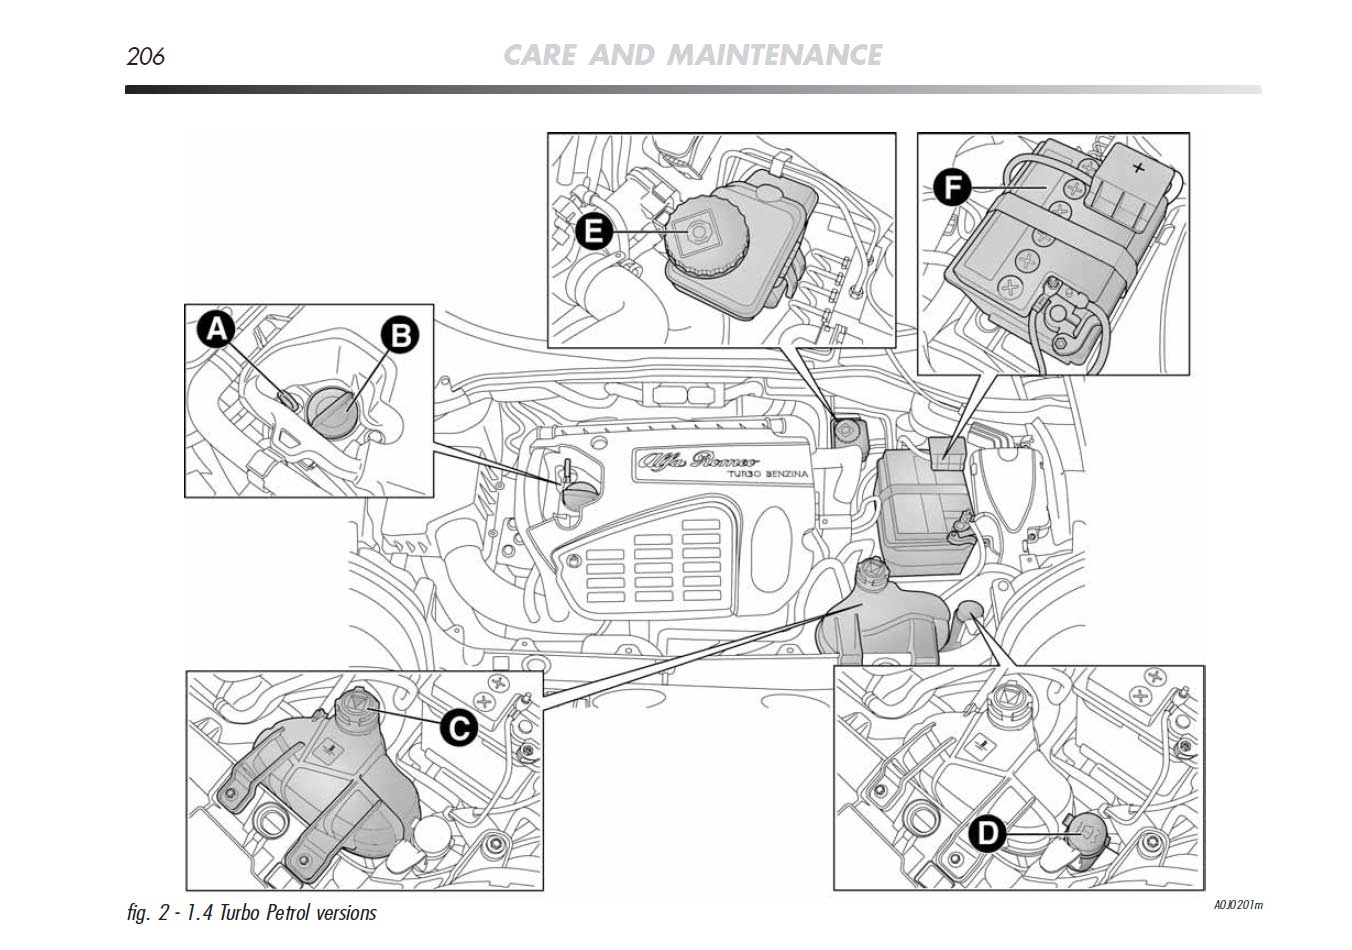 Alfa Romeo Mito Car Battery Location Diagram Of For 14 Turbo Petrol